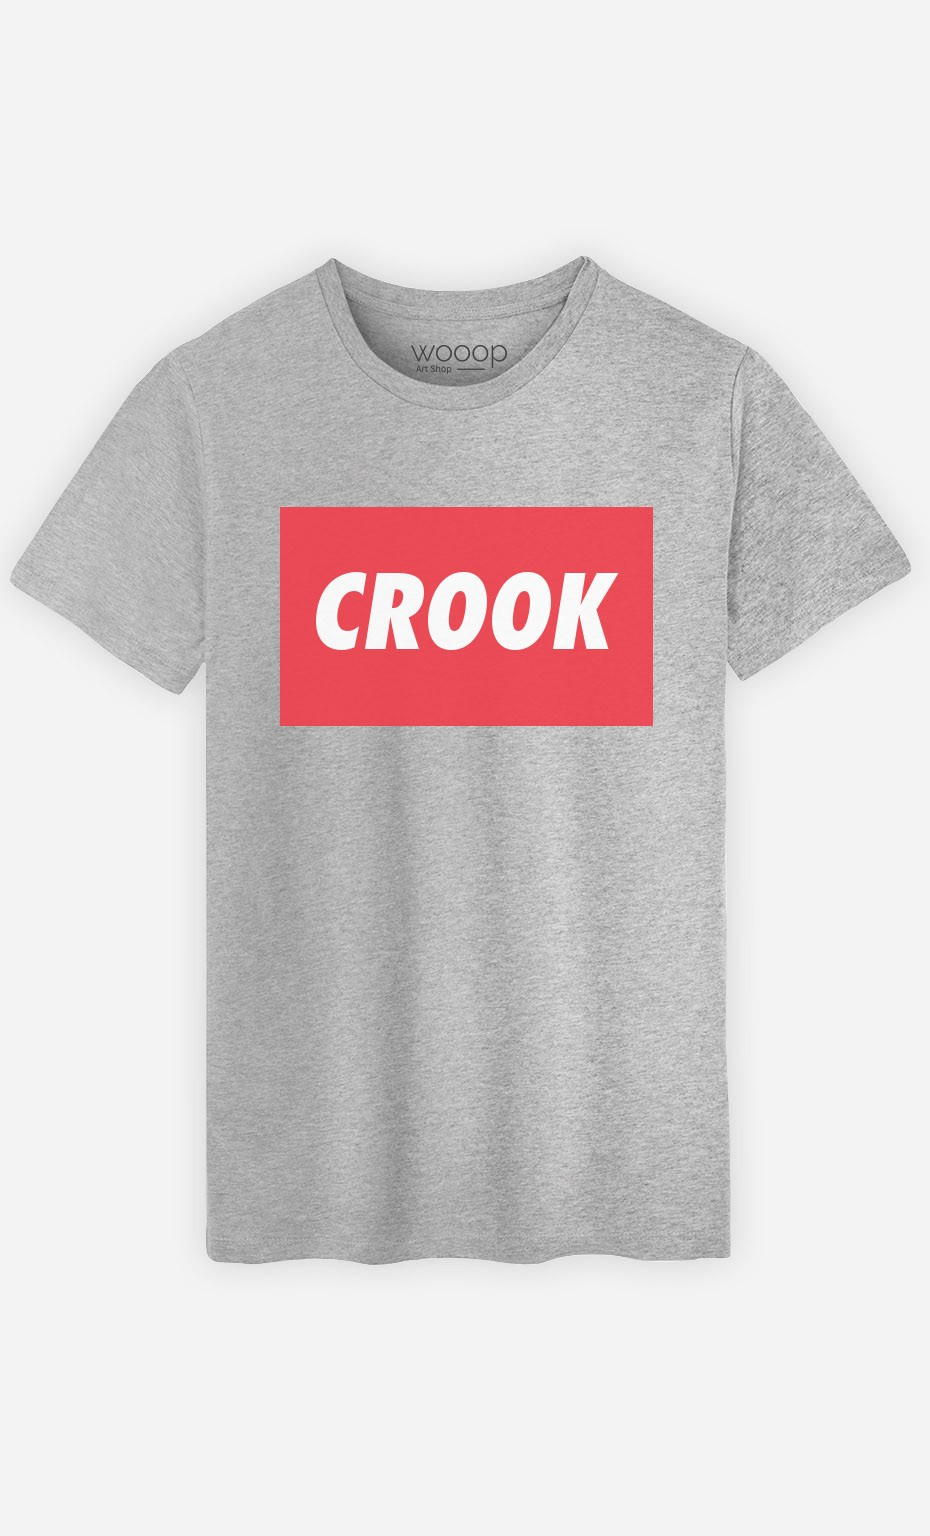 T-Shirt Crook